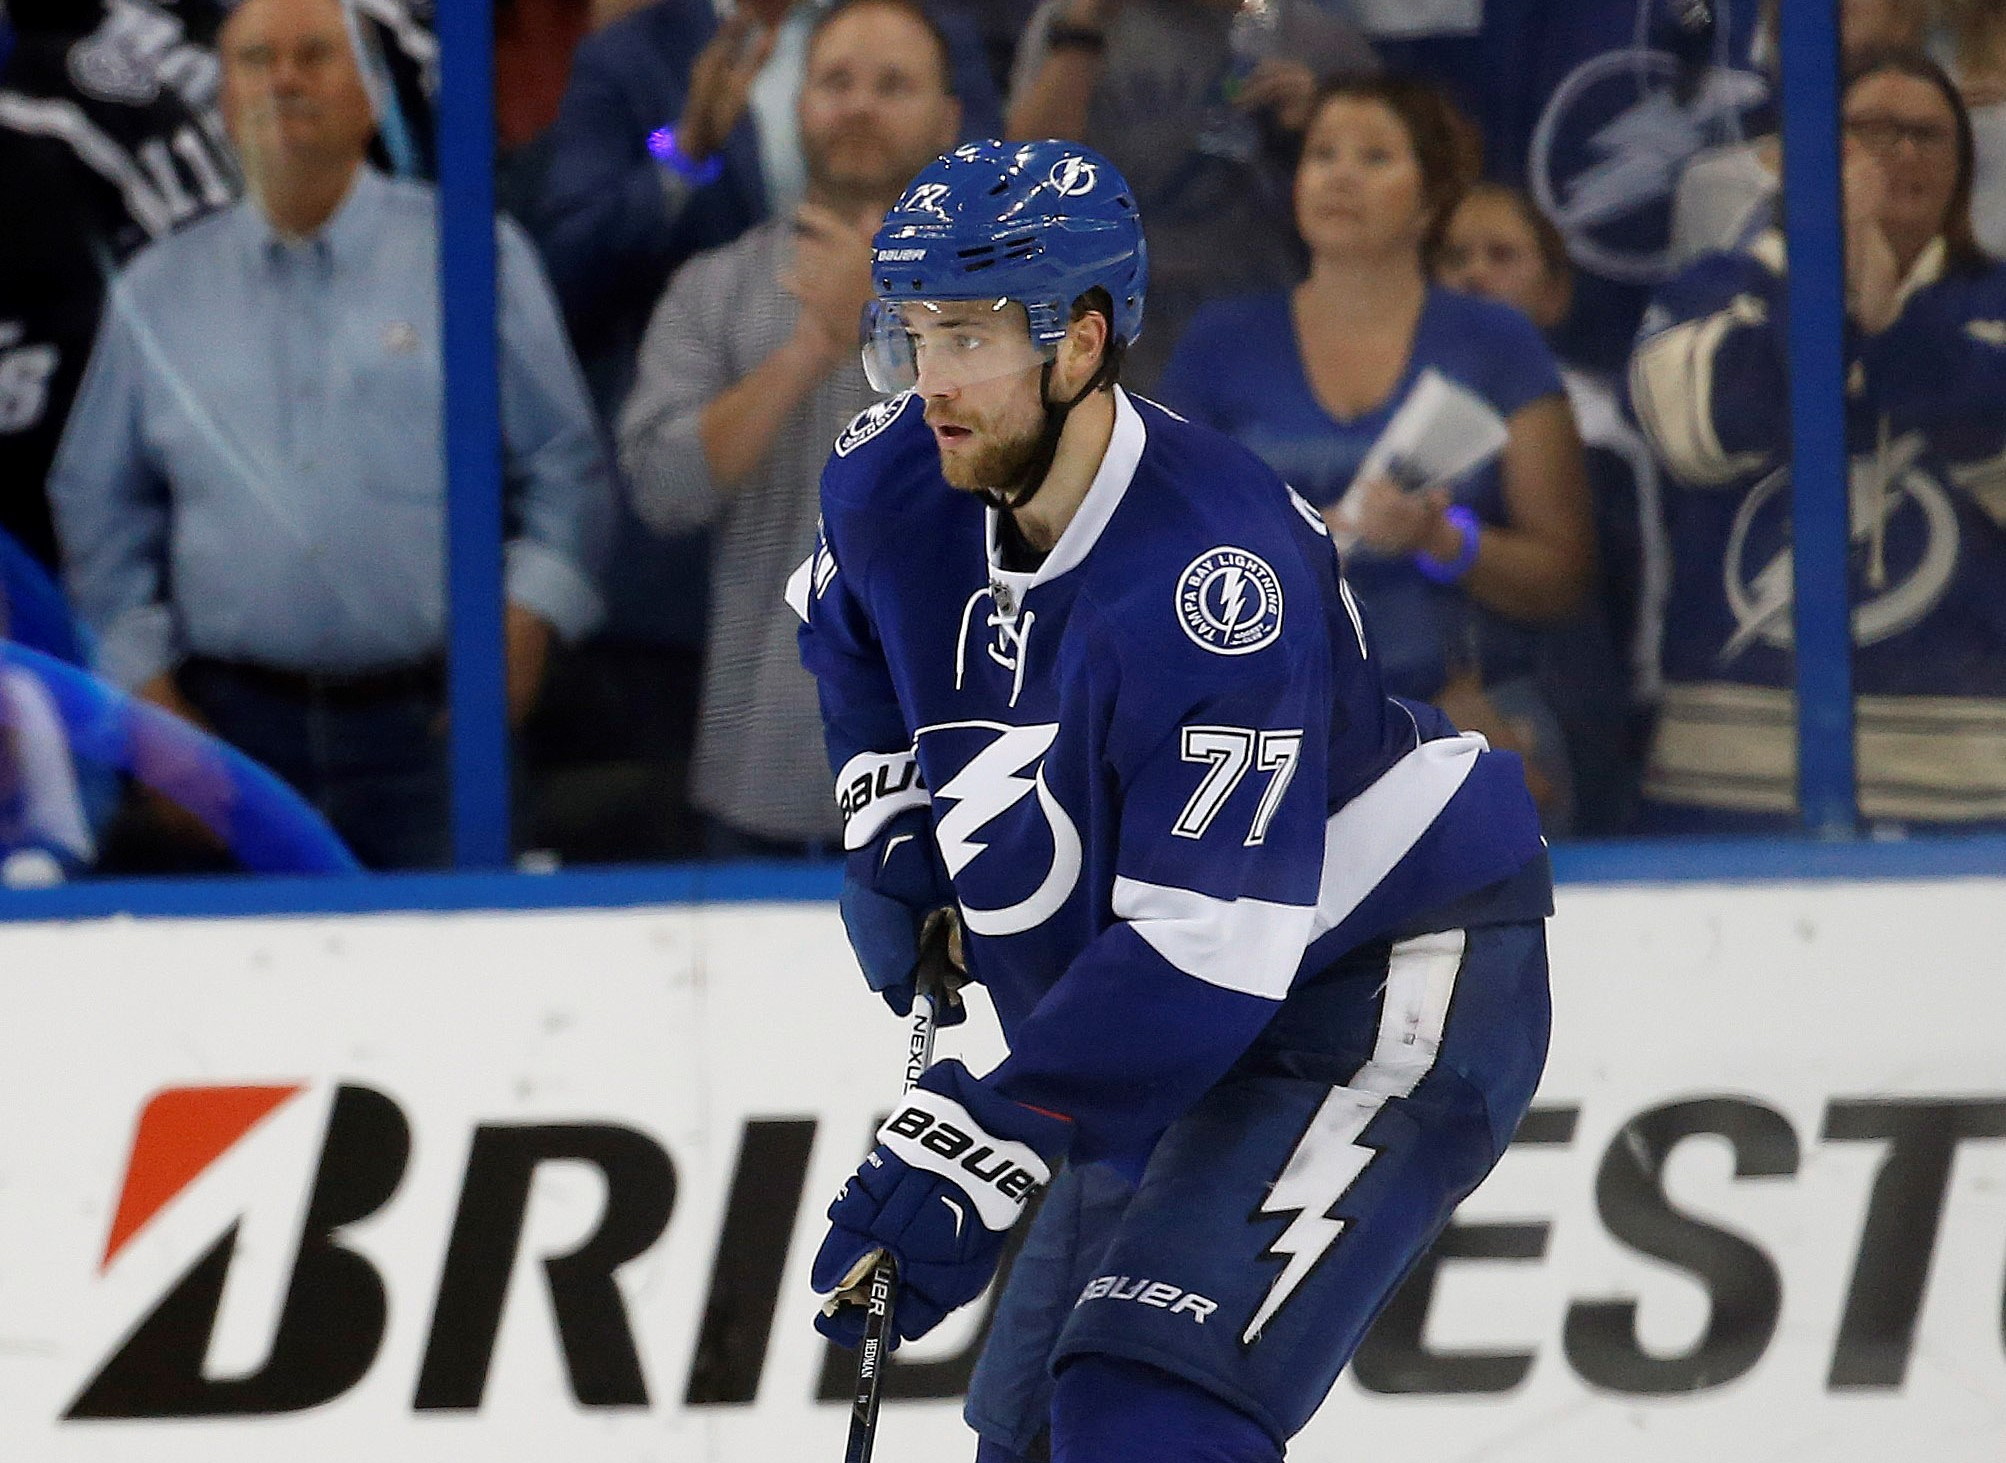 May 8, 2016; Tampa, FL, USA; Tampa Bay Lightning defenseman Victor Hedman (77) skates with the puck against the New York Islanders during the third period in game five of the second round of the 2016 Stanley Cup Playoffs at Amalie Arena. Tampa Bay Lightning defeated the New York Islanders 4-0. Mandatory Credit: Kim Klement-USA TODAY Sports